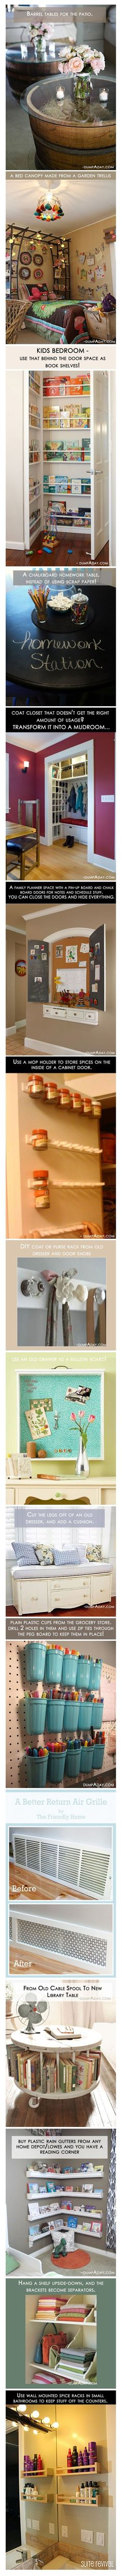 16 Do It Yourself Home Ideas |